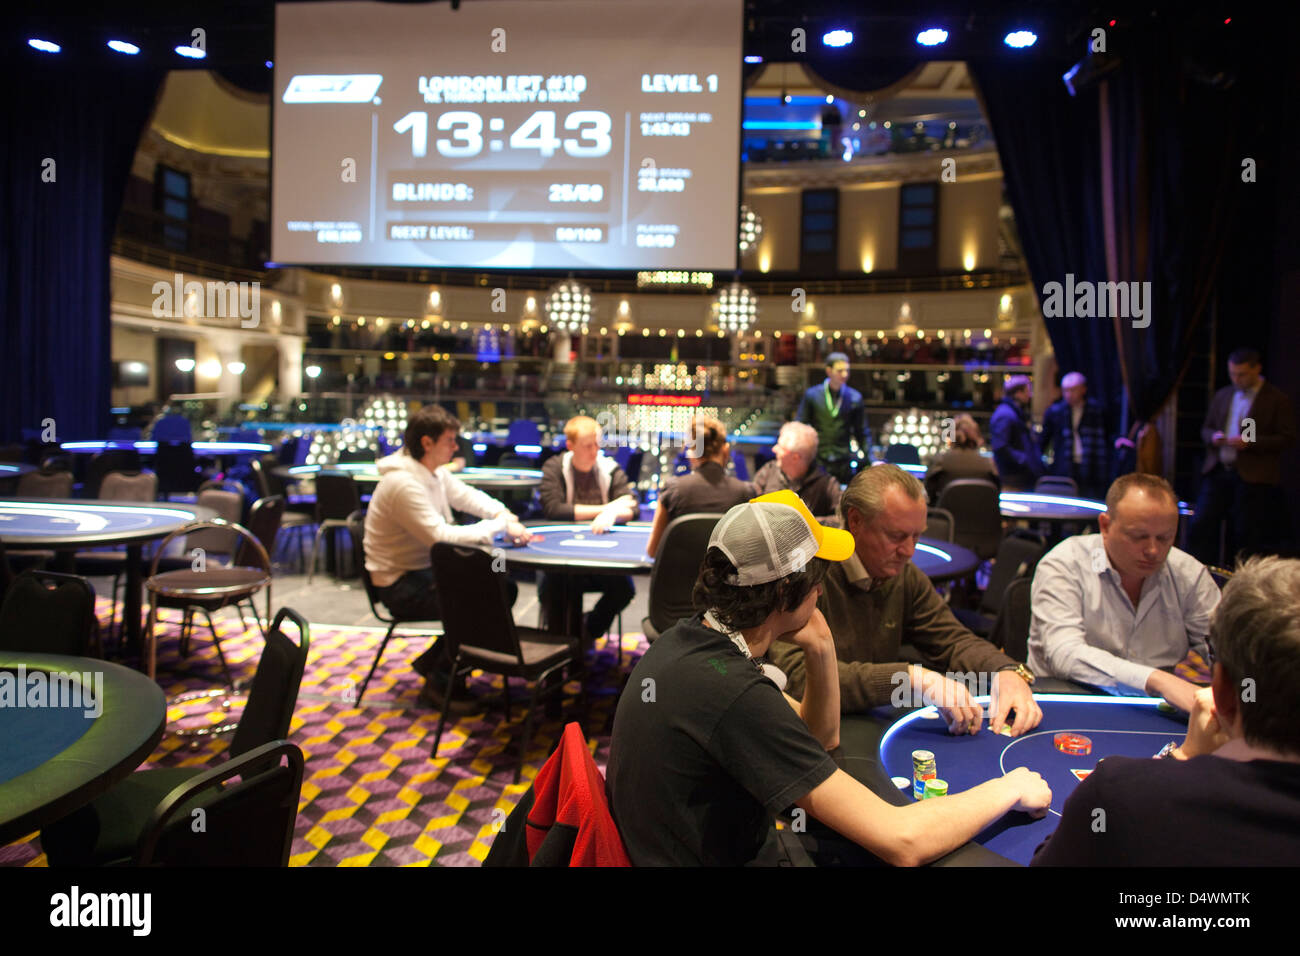 london casinos